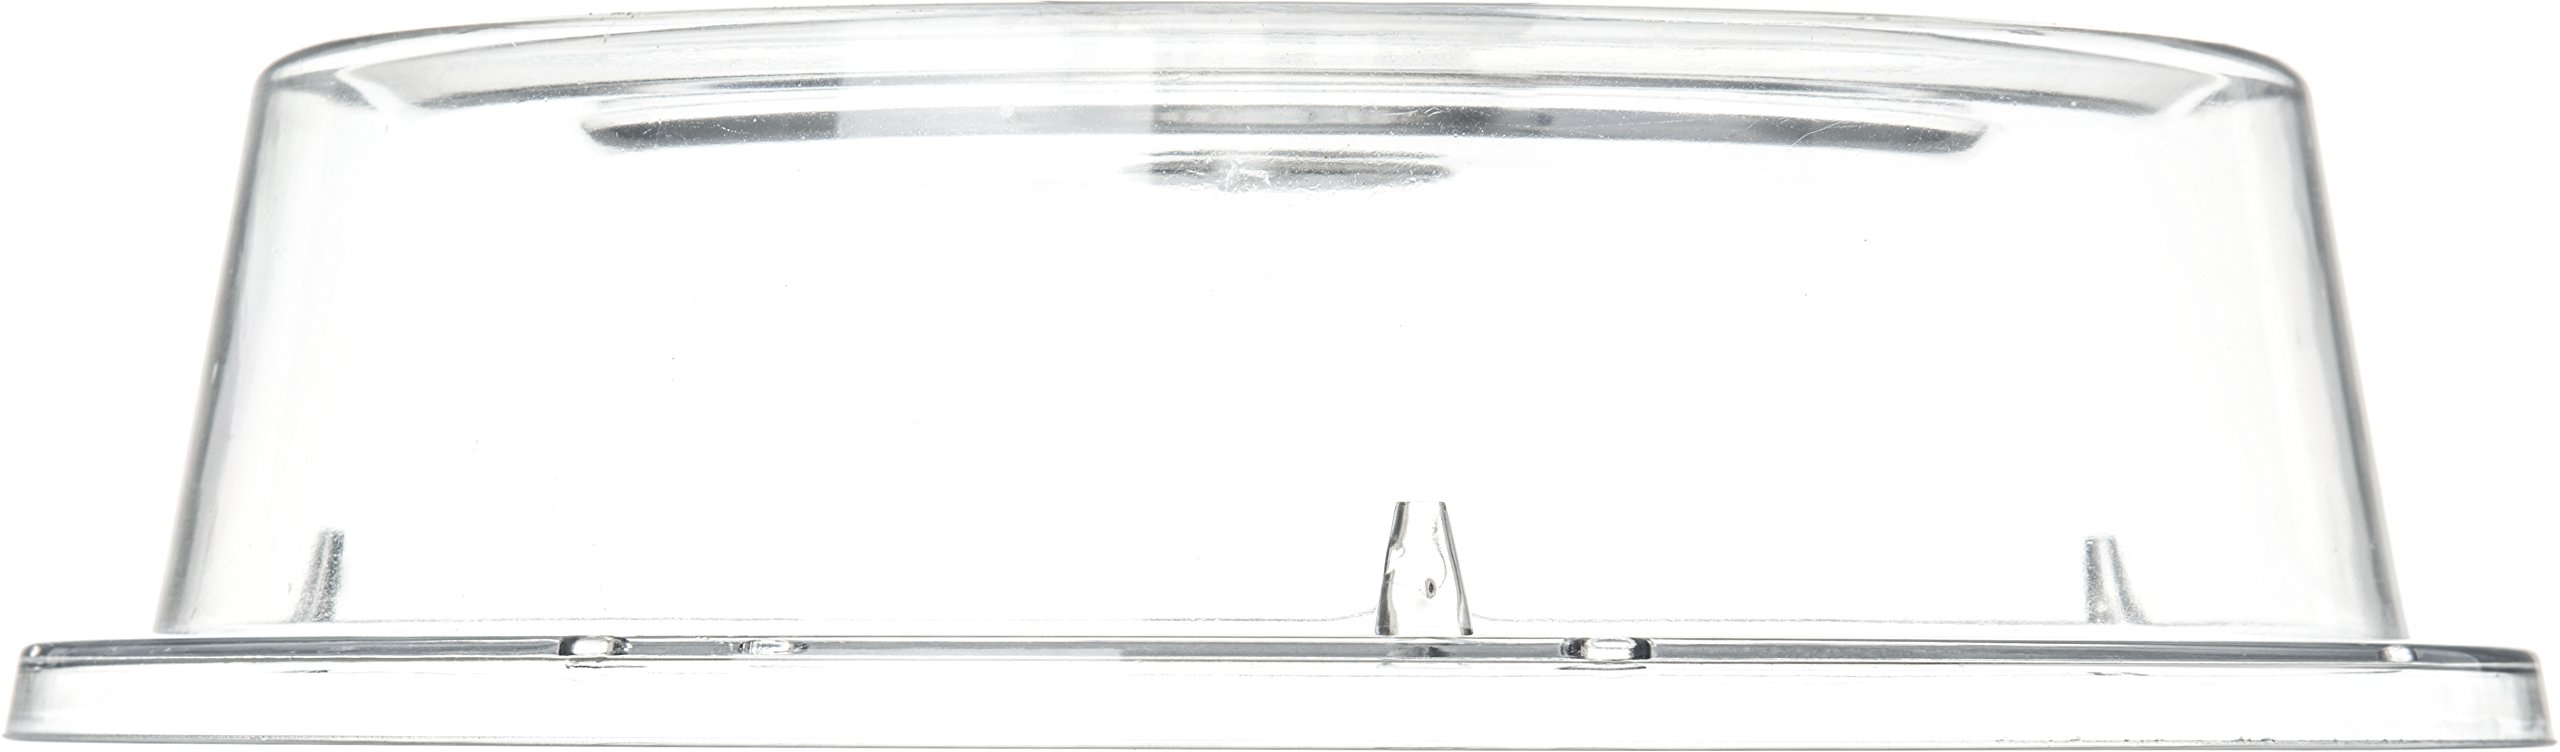 Carlisle 190007 Polycarbonate Plate Cover, 9.37'' Bottom Diameter x 2.56'' Height, Clear (Case of 12) by Carlisle (Image #3)